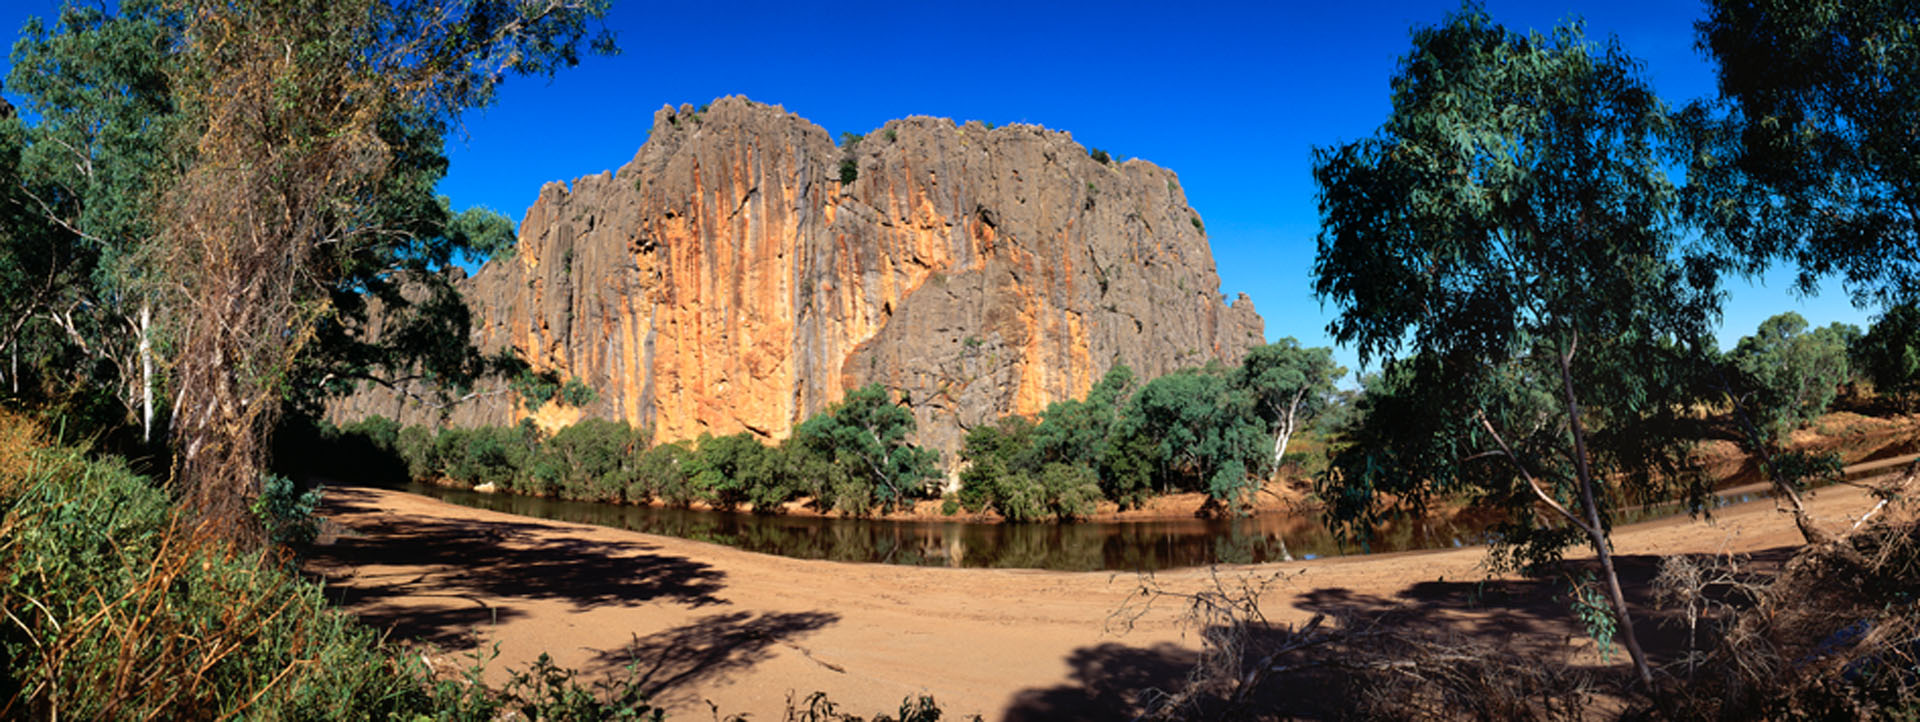 WINJANA GORGE rock and water image